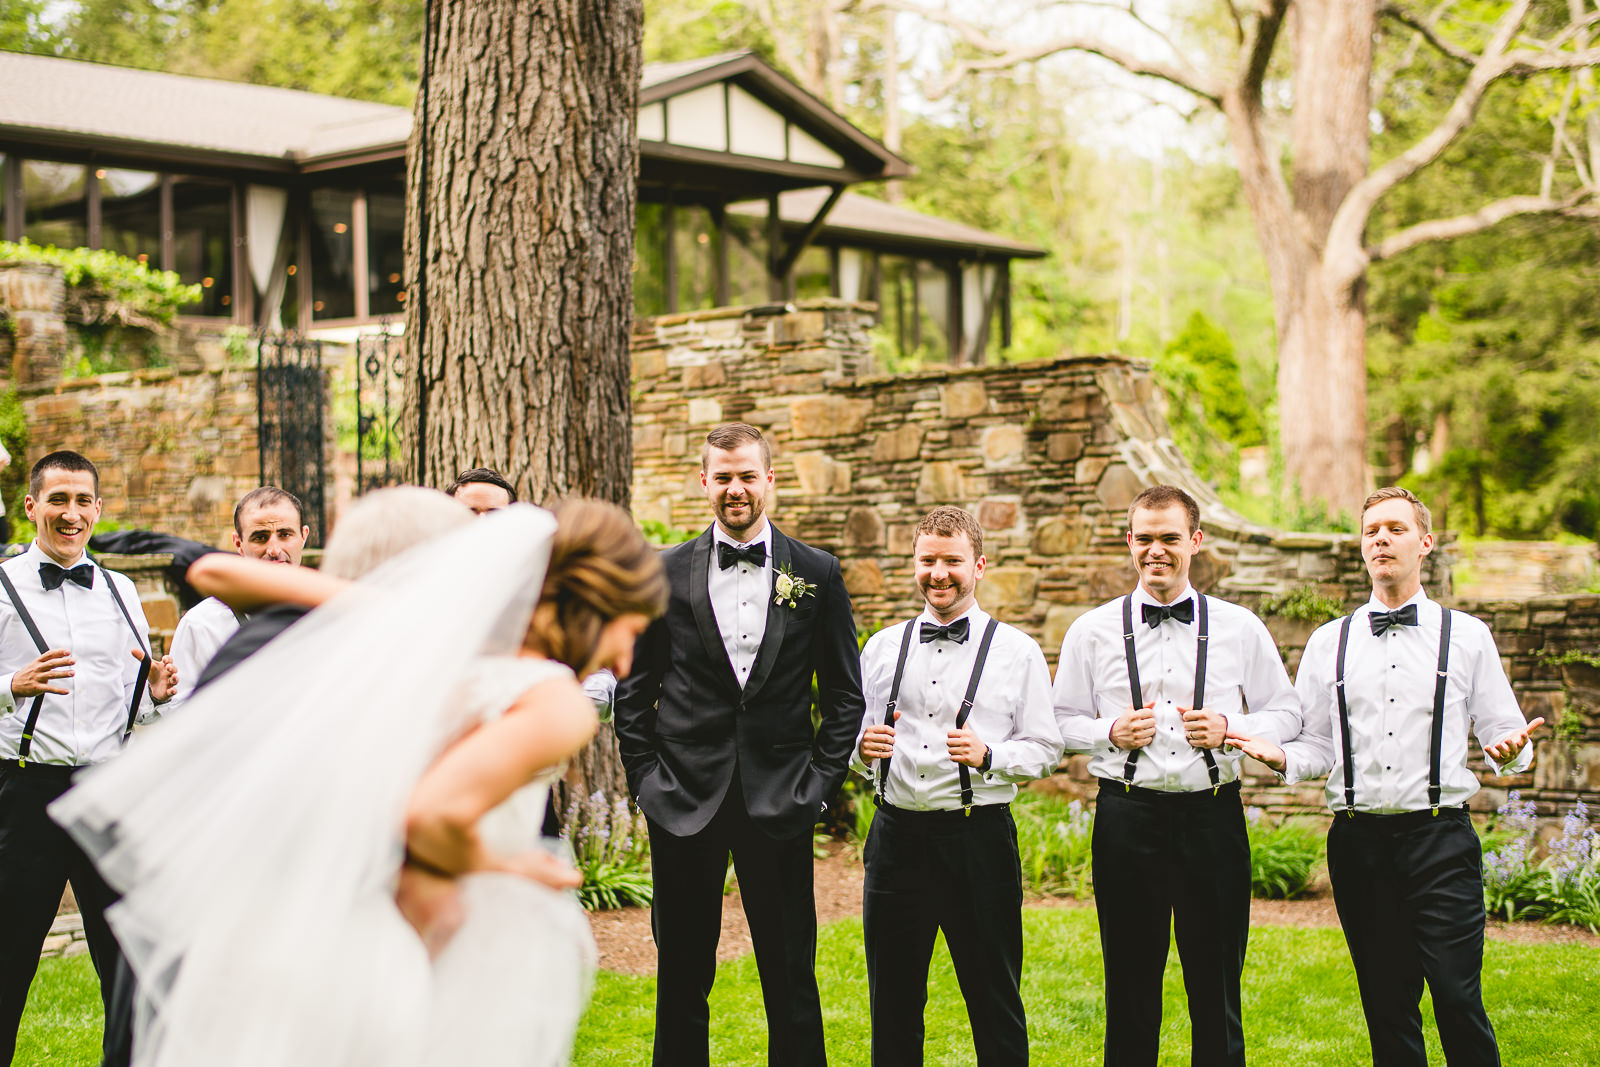 33 cleveland wedding - Club of Hillbrook Wedding // Jenna + Ben